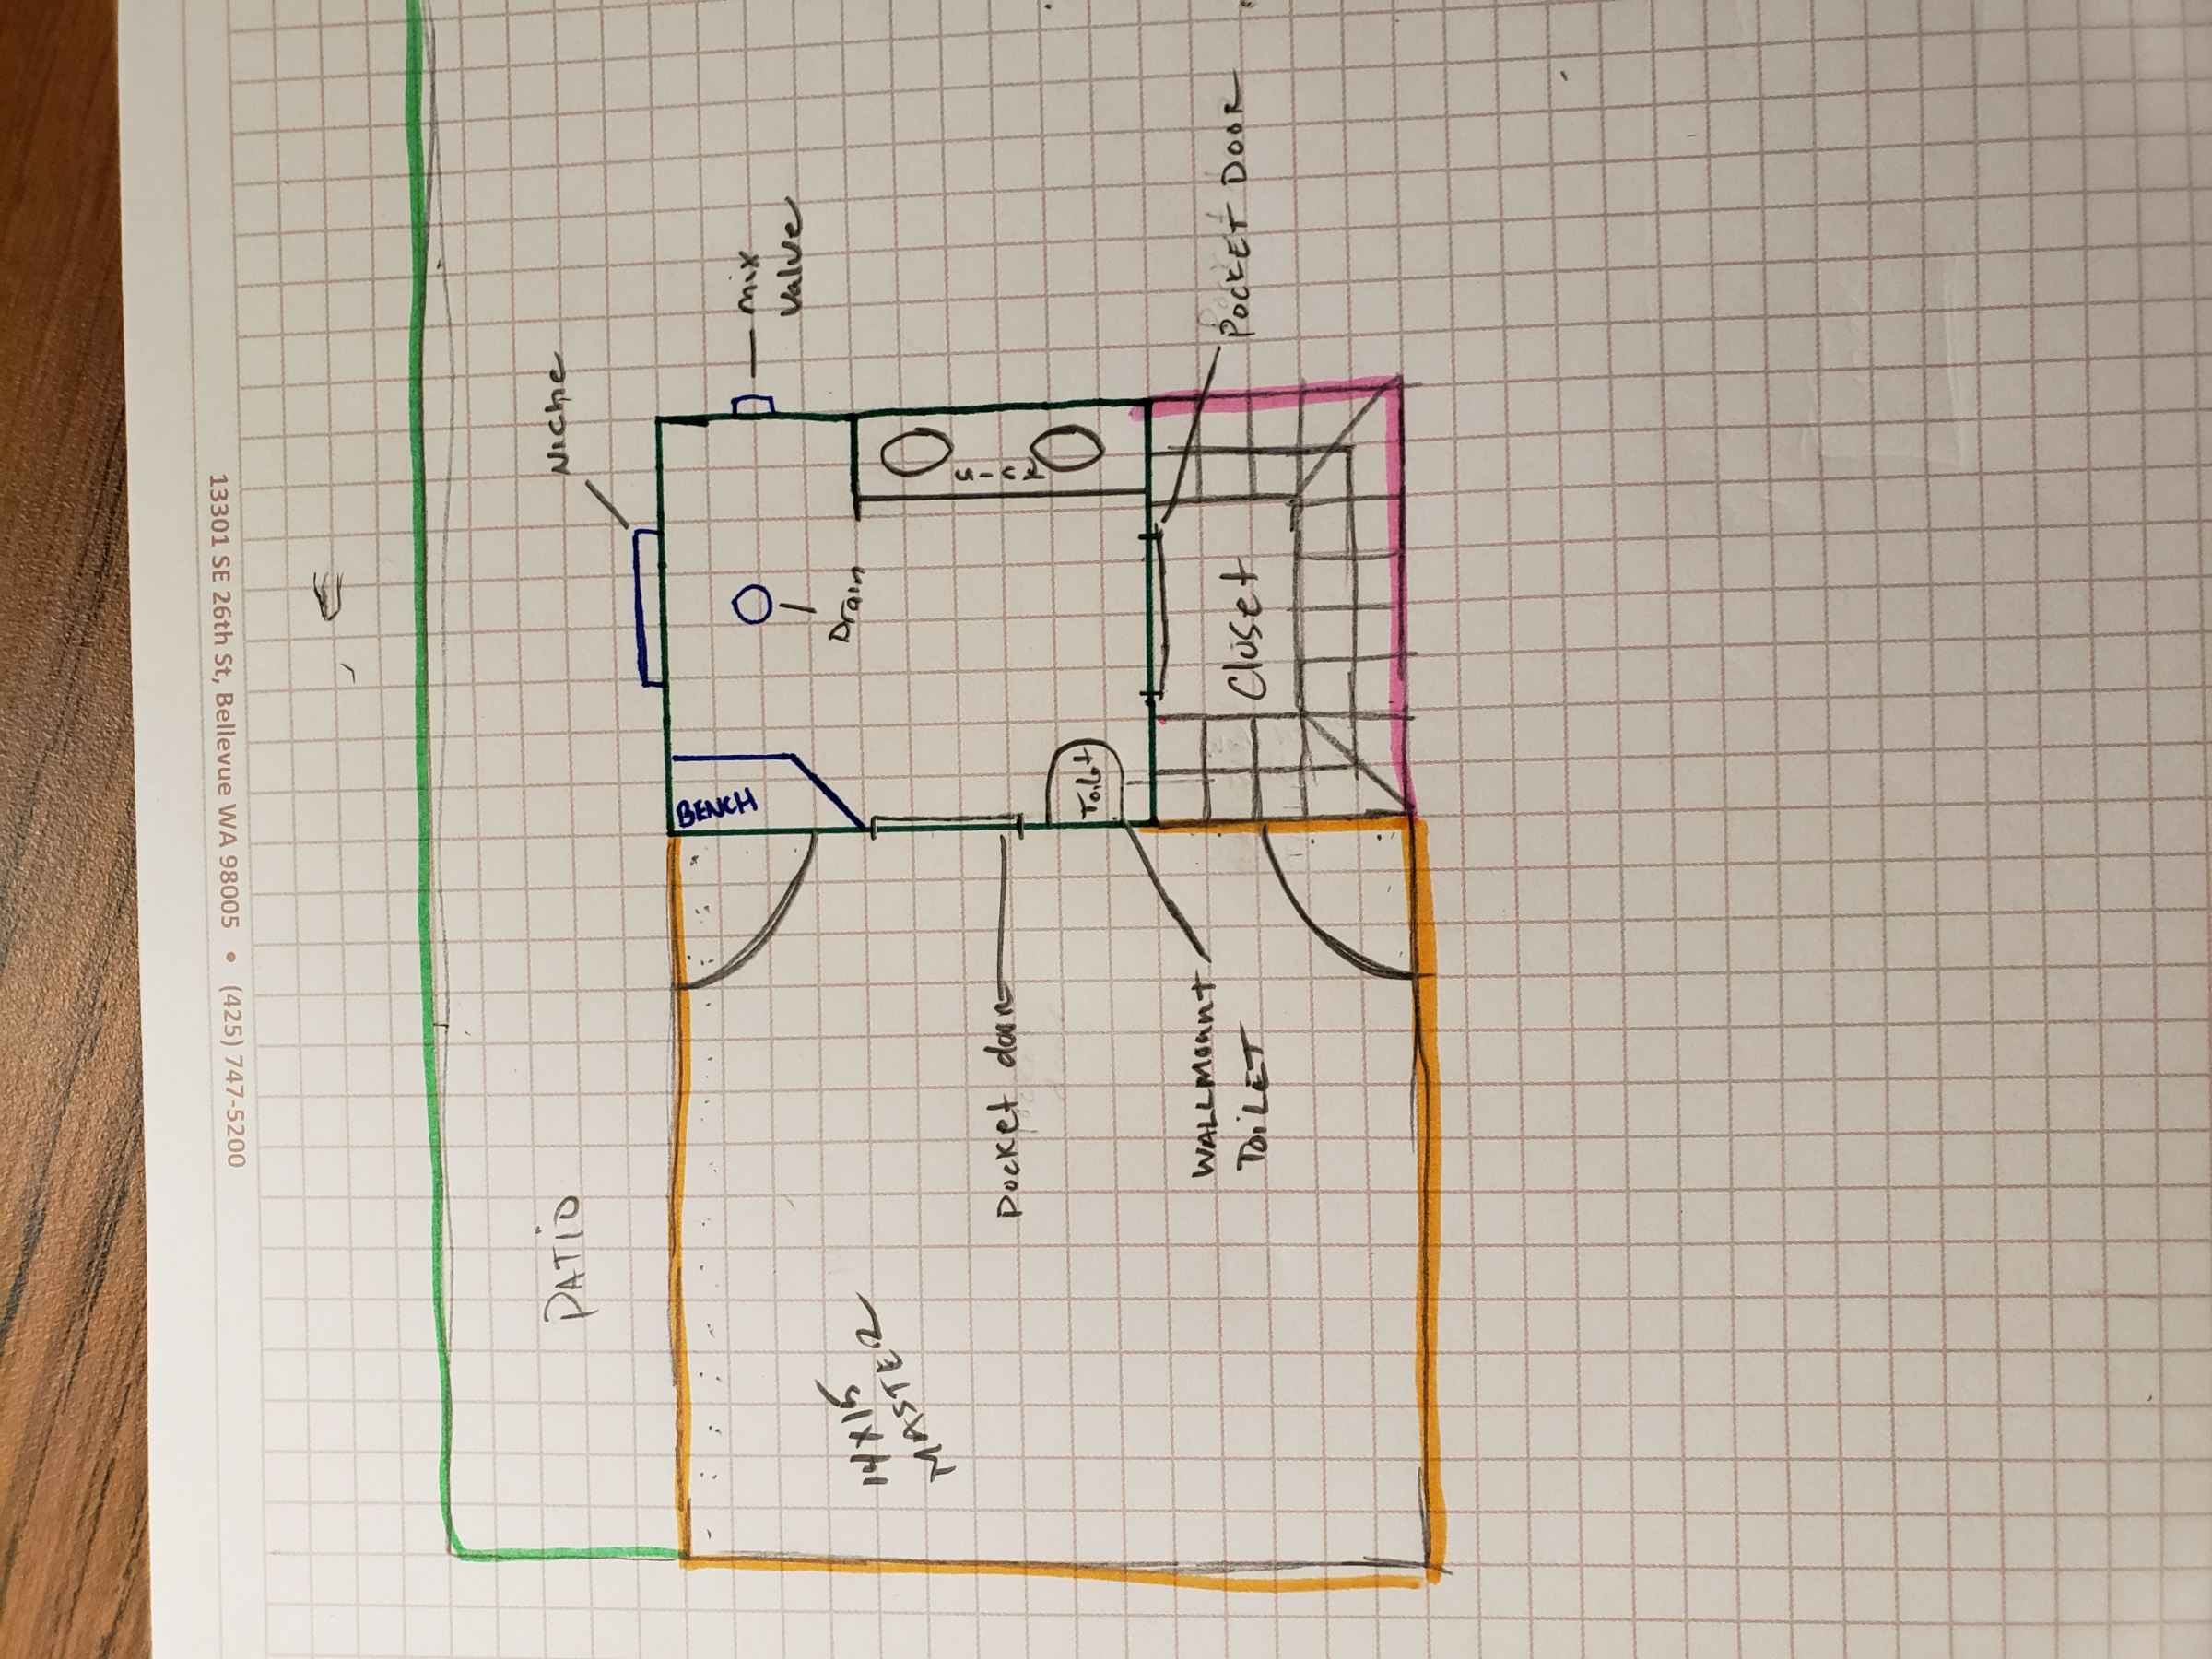 Curbless Shower Bathroom Build in This Old House-plan.jpg